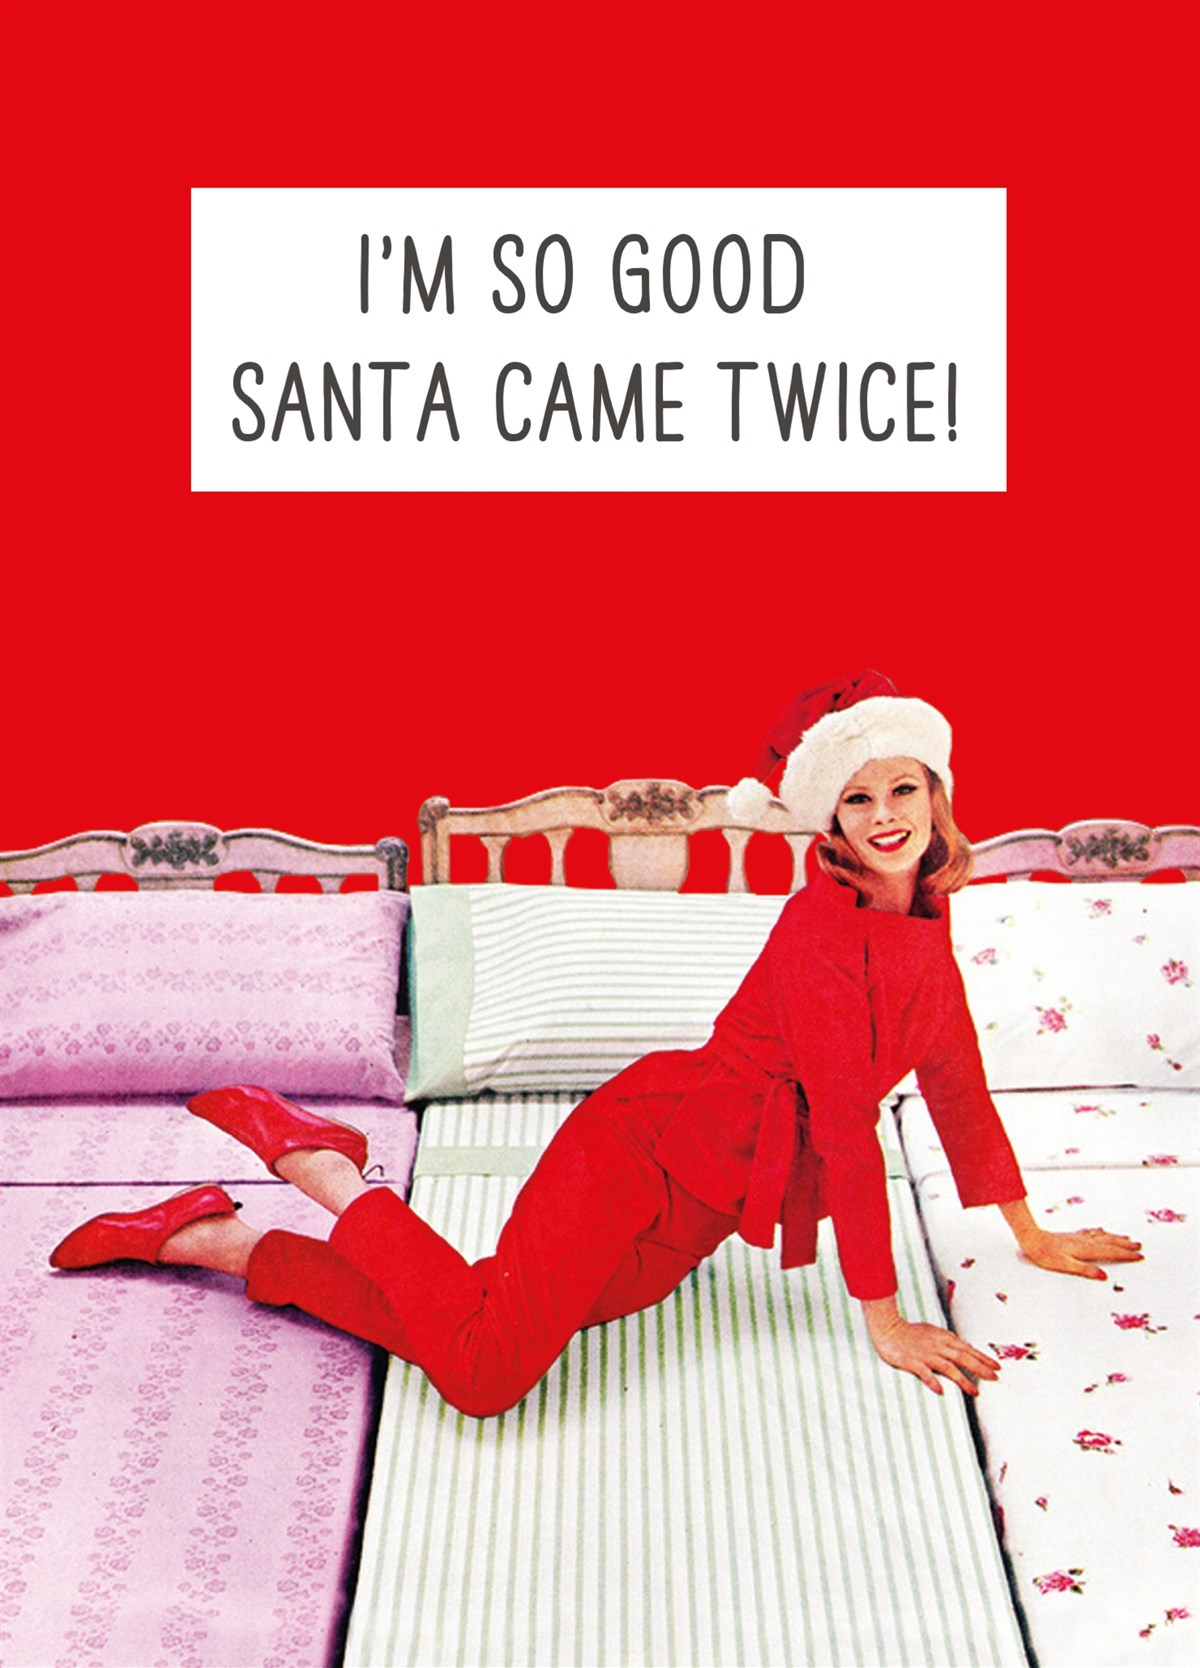 Funny Rude Santa Came Twice Personalised Christmas Card